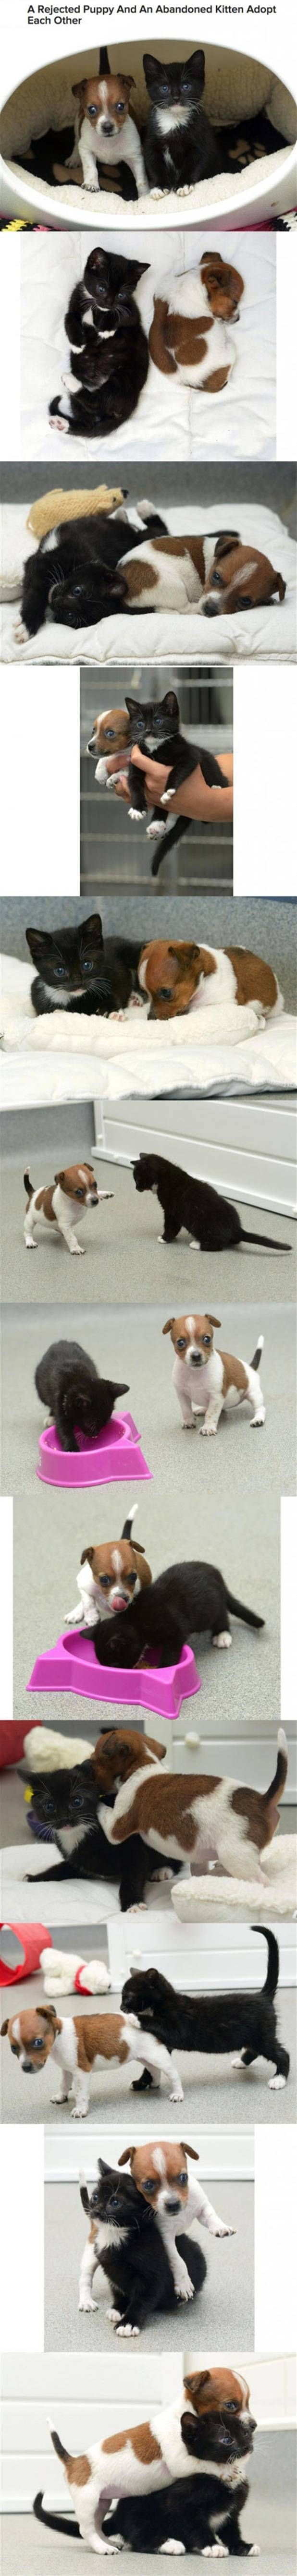 A Rejected Puppy And An Abandoned Kitten Adopt Each Other Baby Animals Cute Animals Animals Beautiful